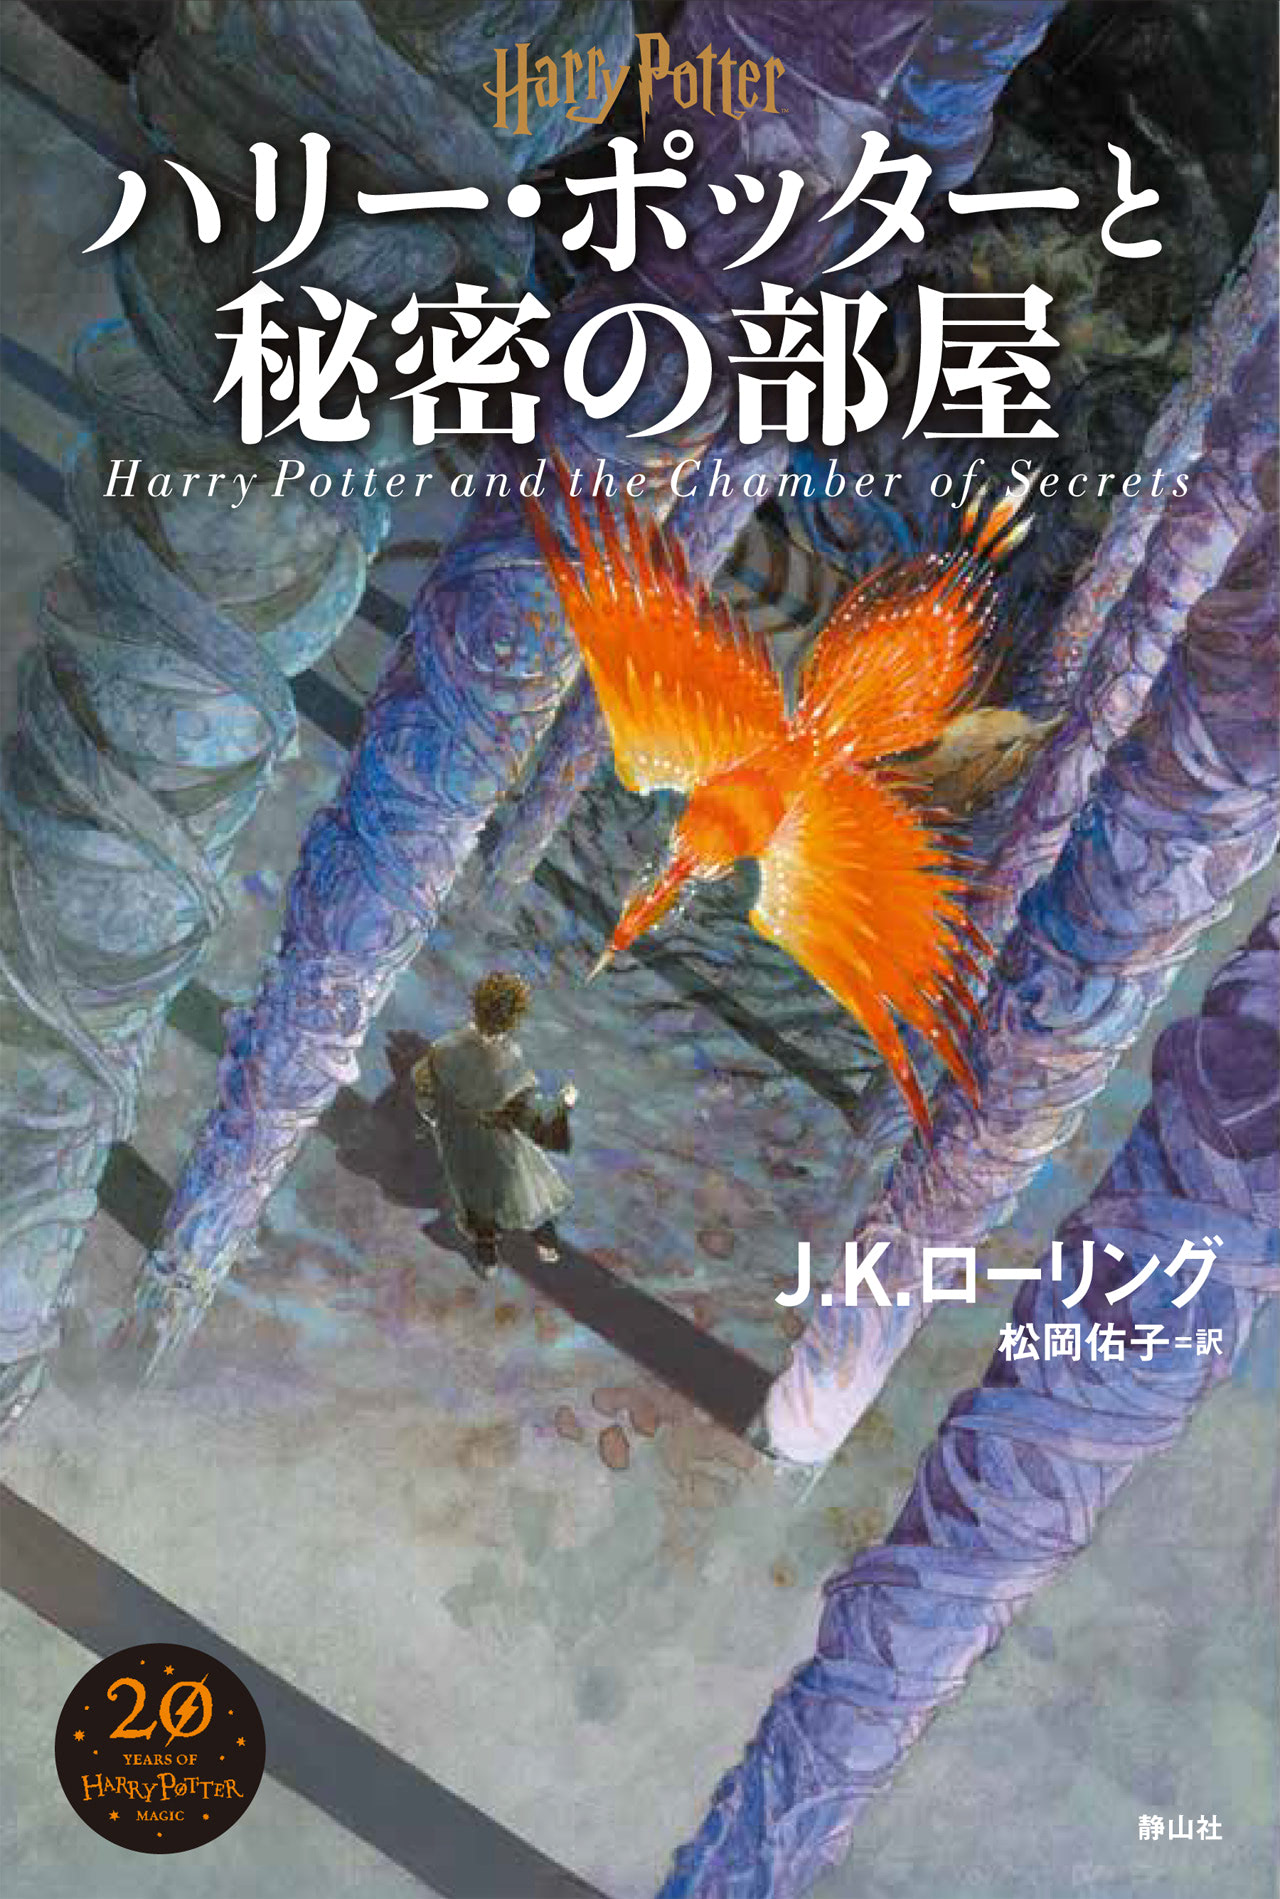 'Chamber of Secrets' Japanese 20th anniversary edition